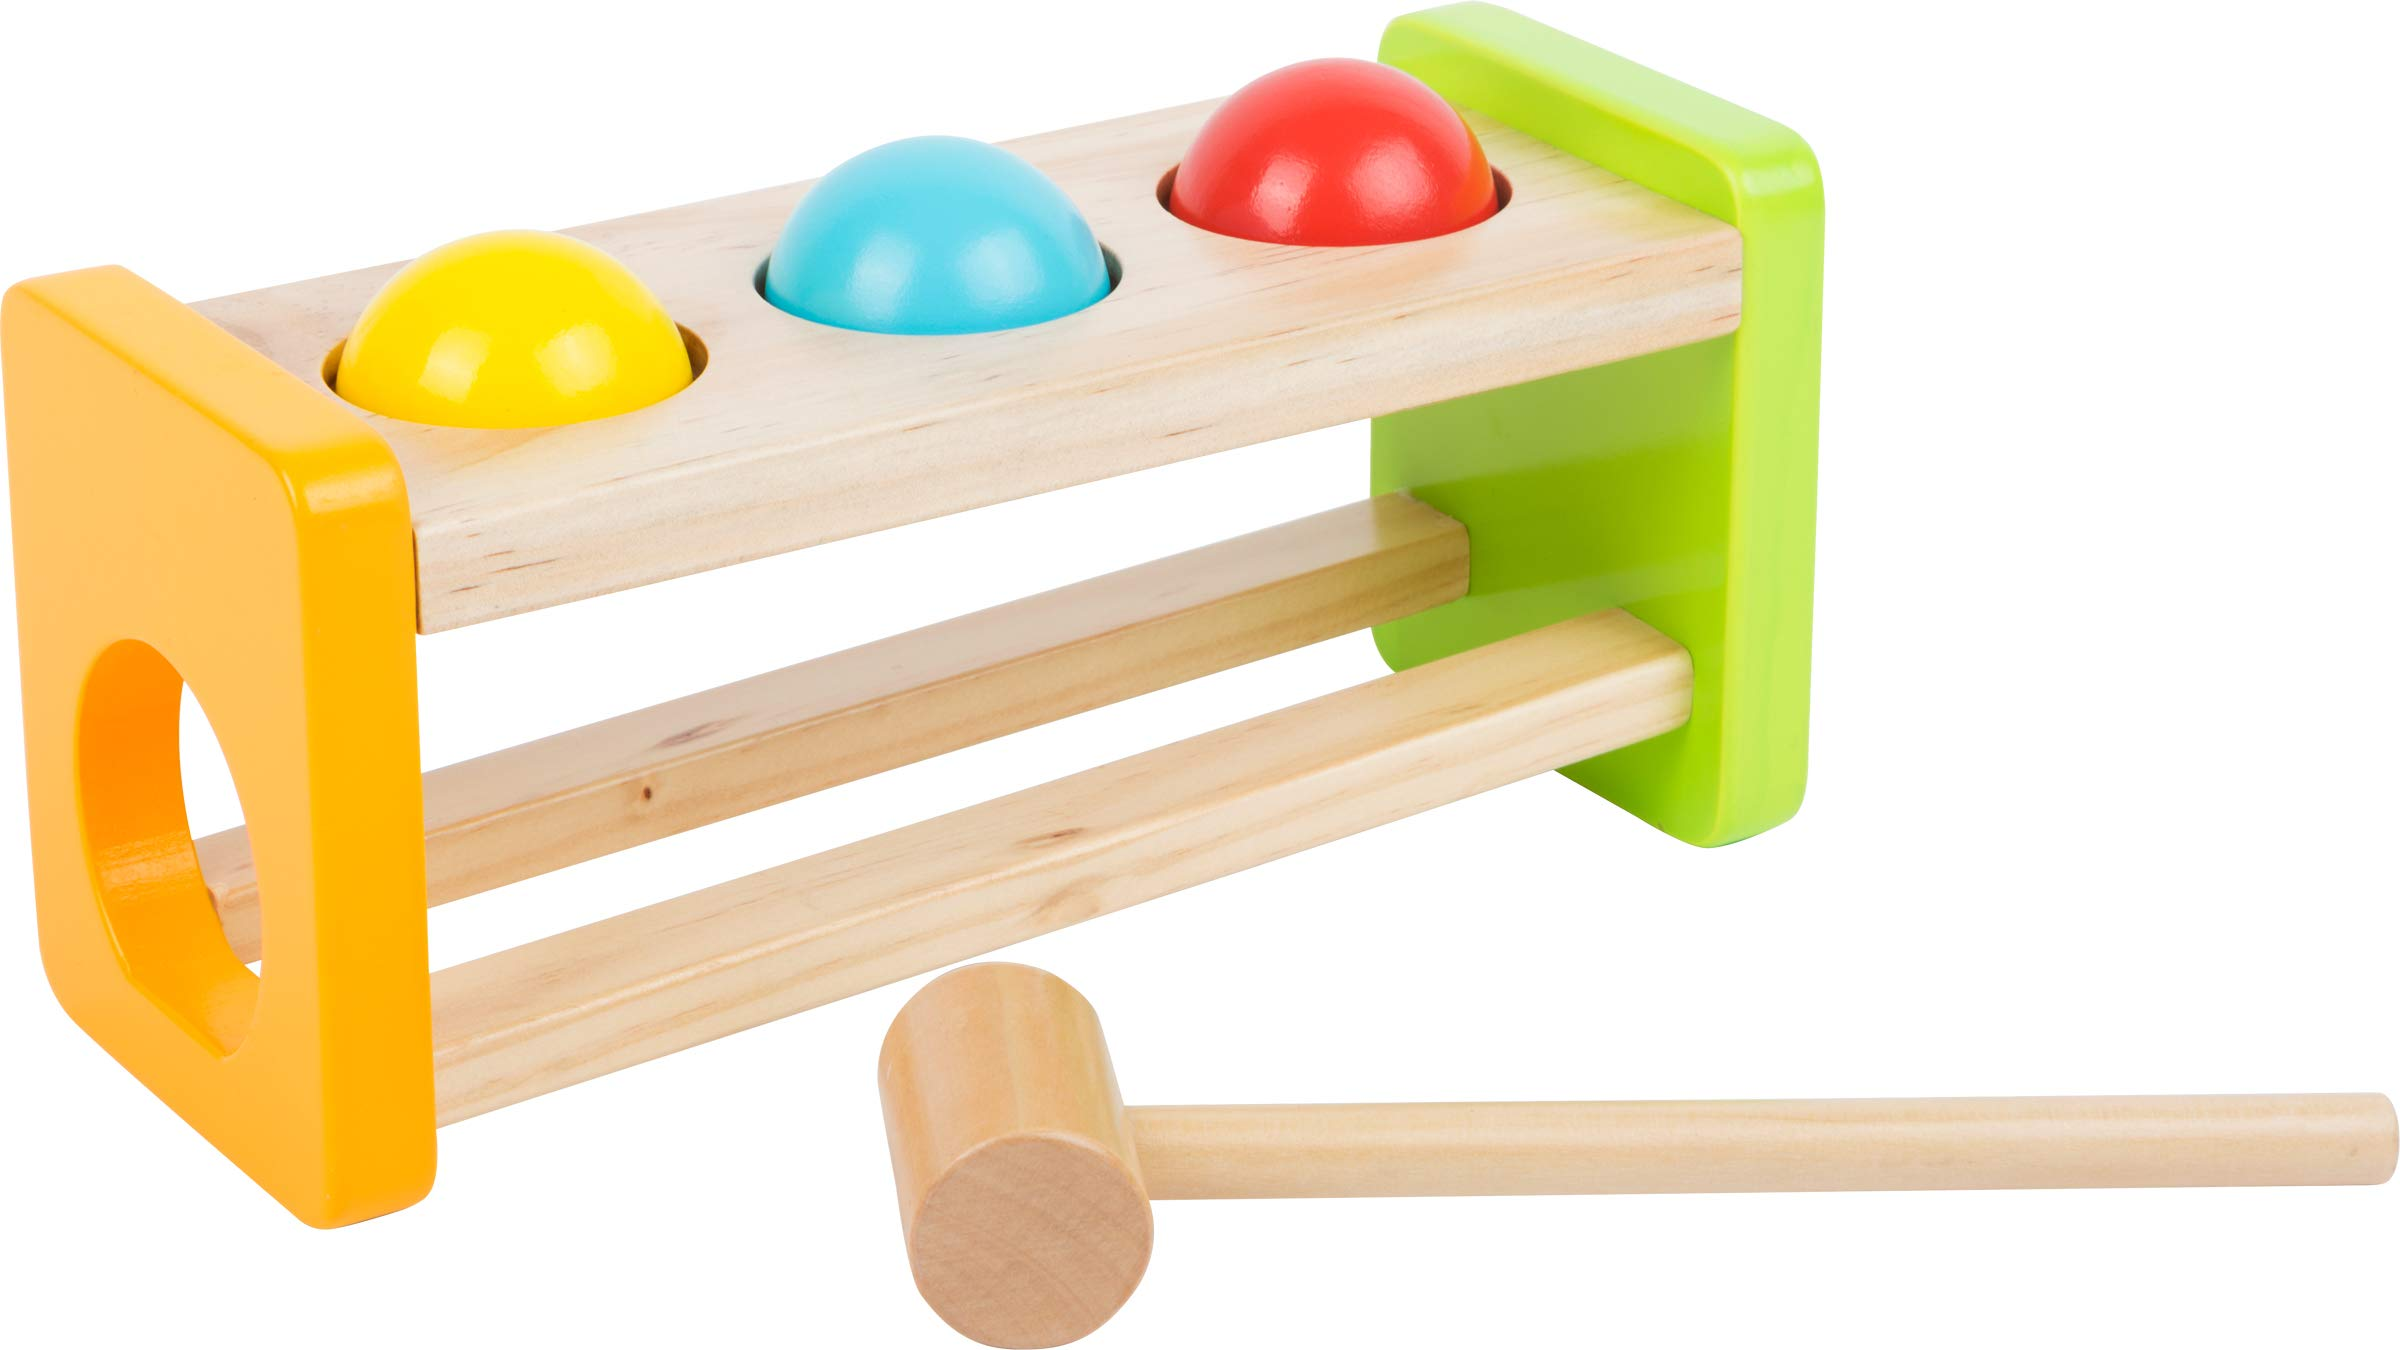 Small Foot Wooden Toys Hammering Marble Run with Three Colorful Wooden Balls Toy Designed for Children 18+ Months